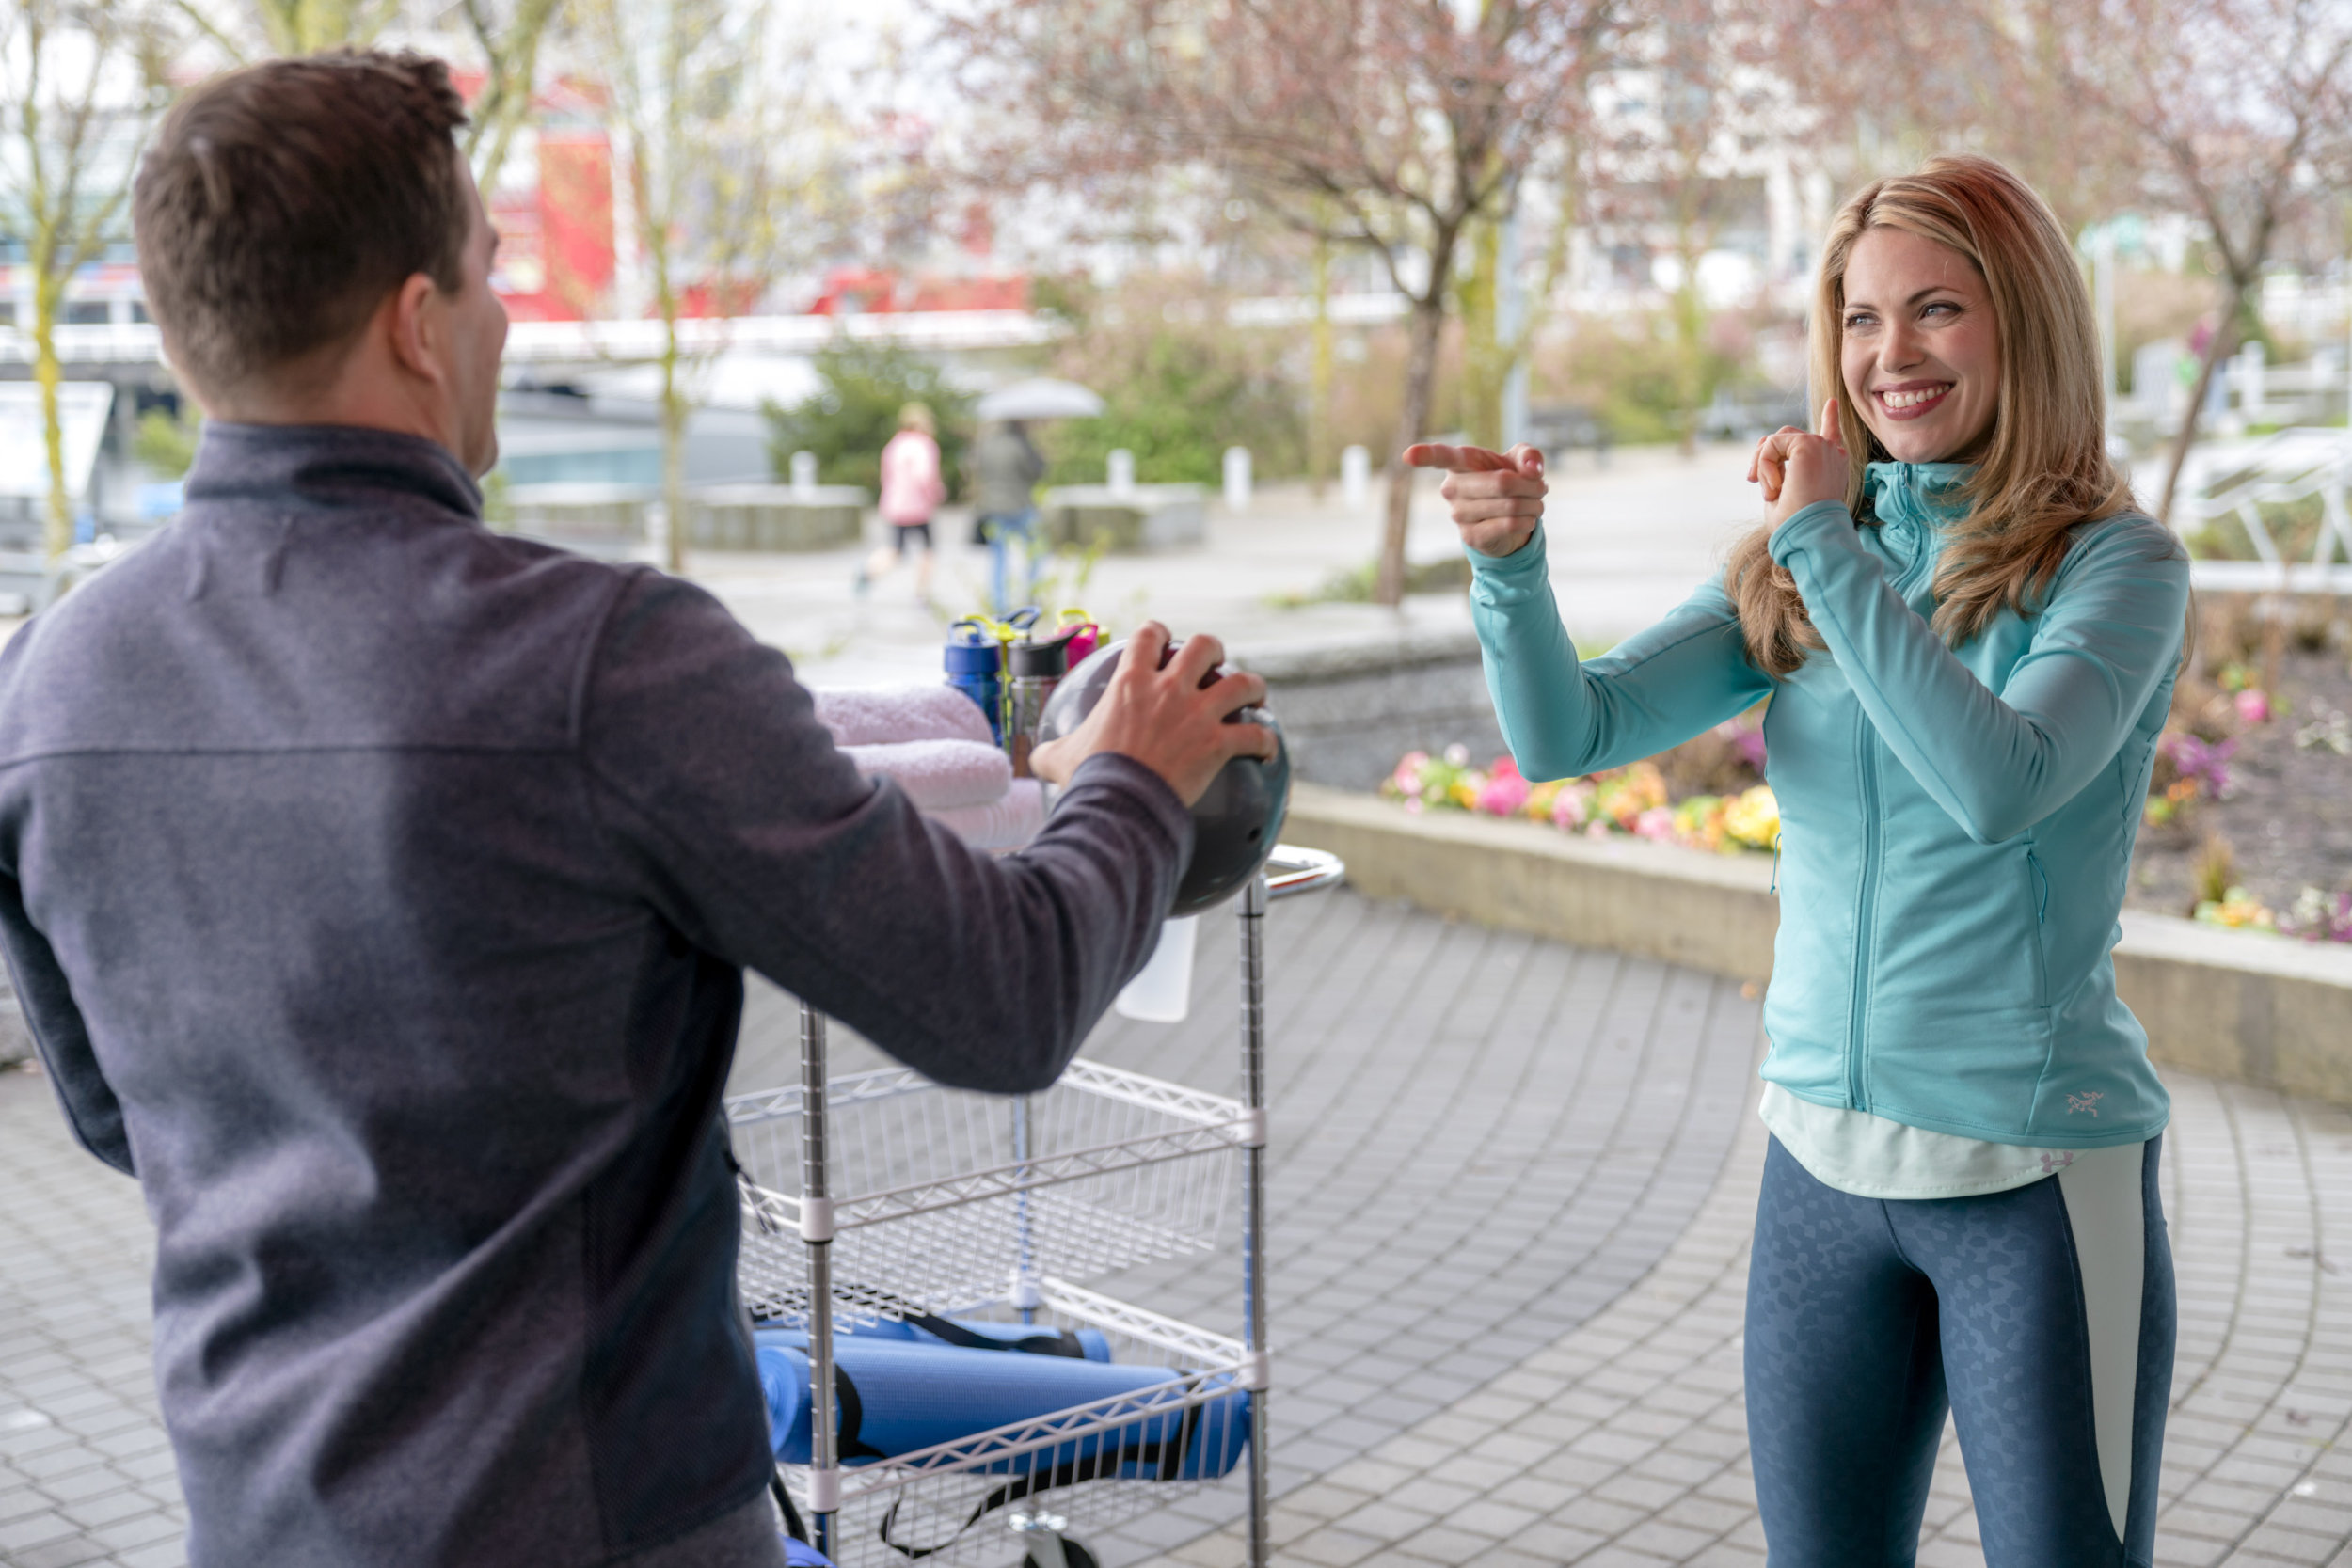 Exclusives The Perfect Bride Outtakes Hallmark Channel